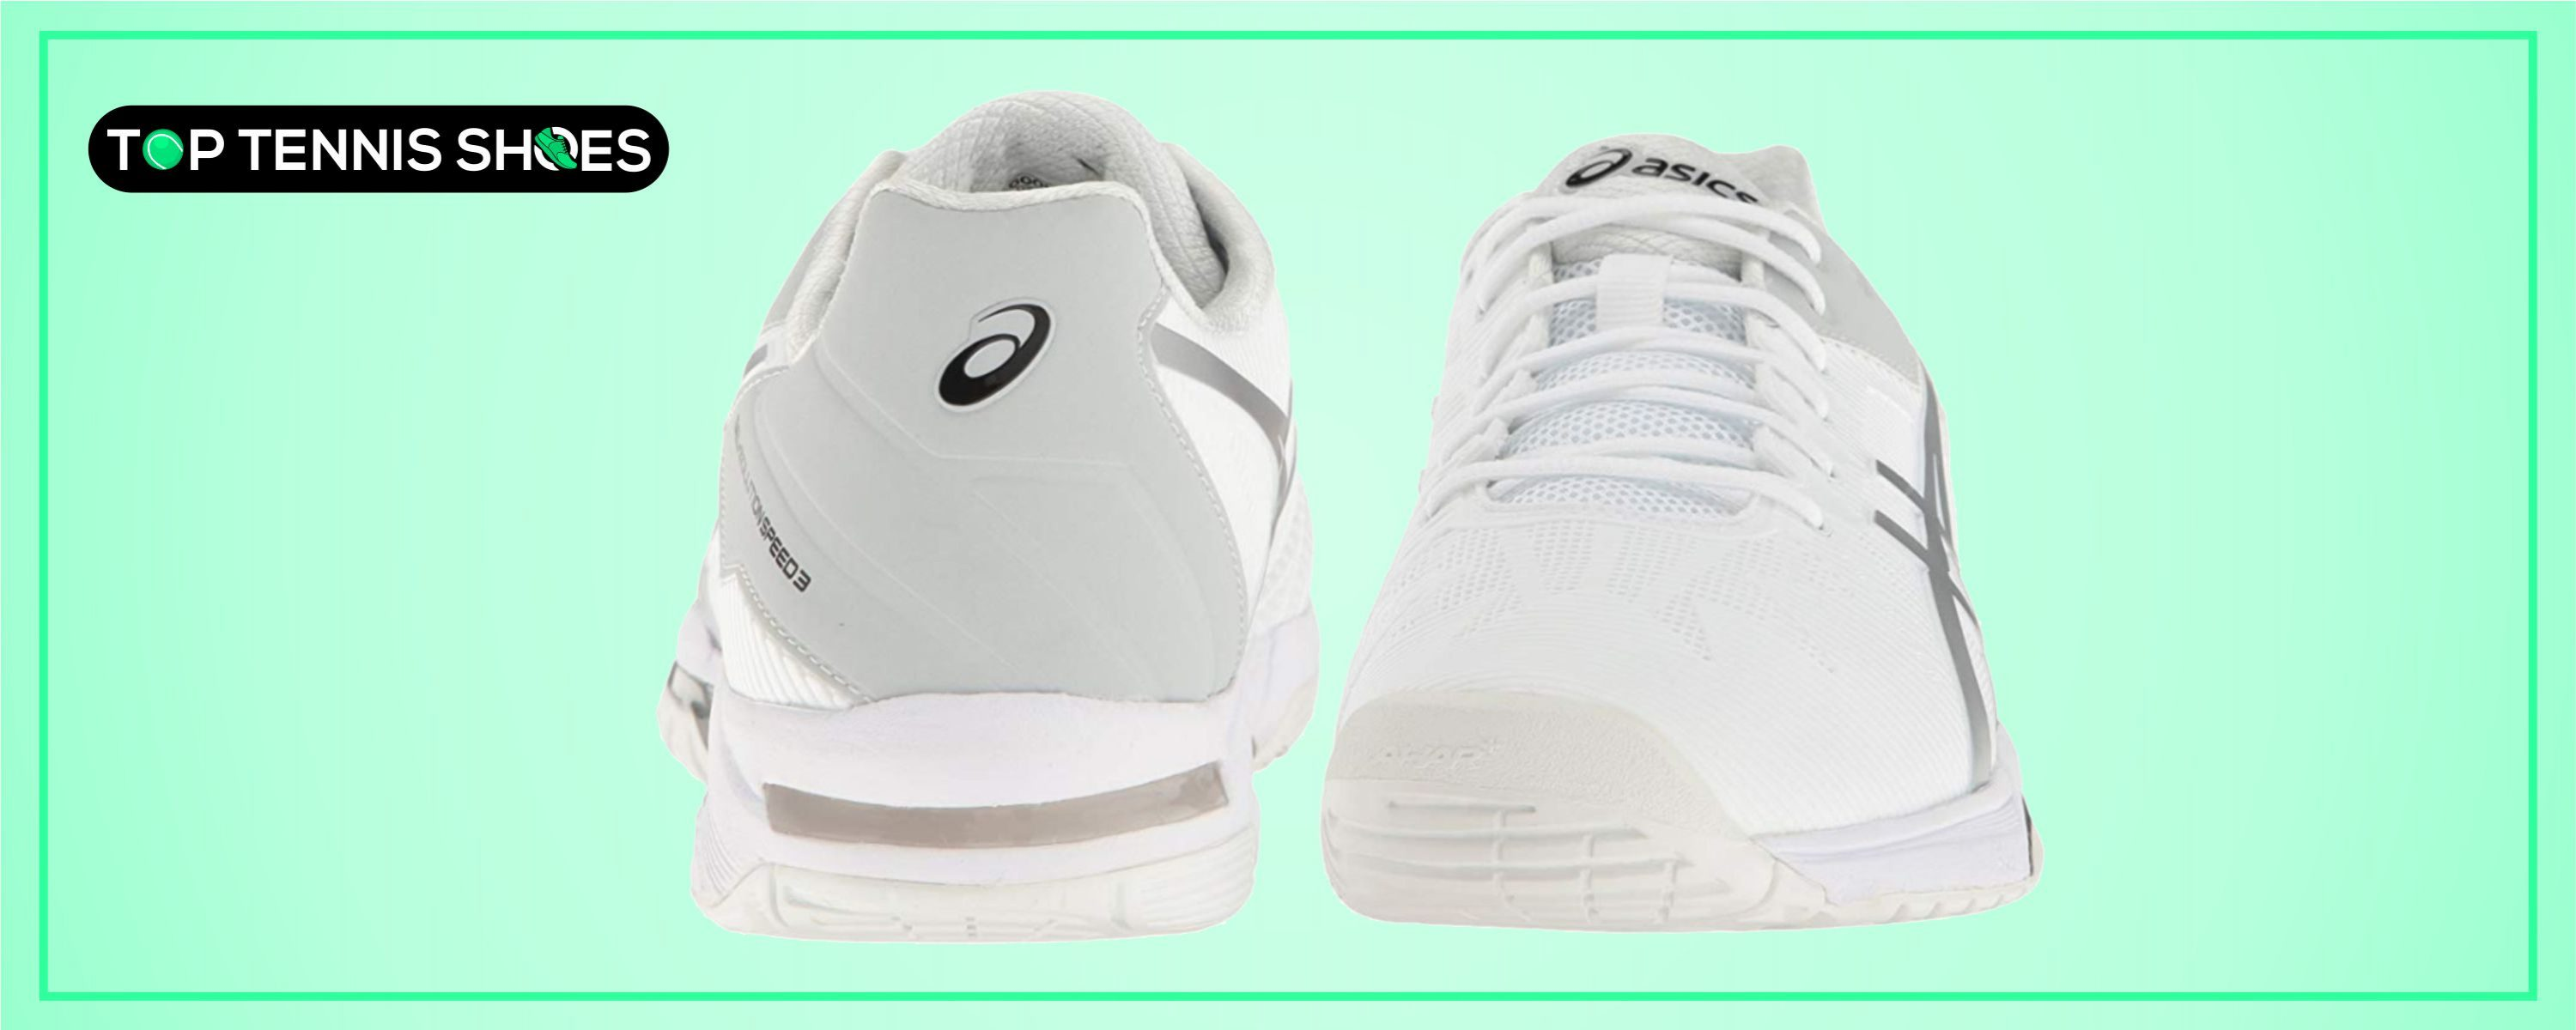 Affordable Quality Tennis Shoes